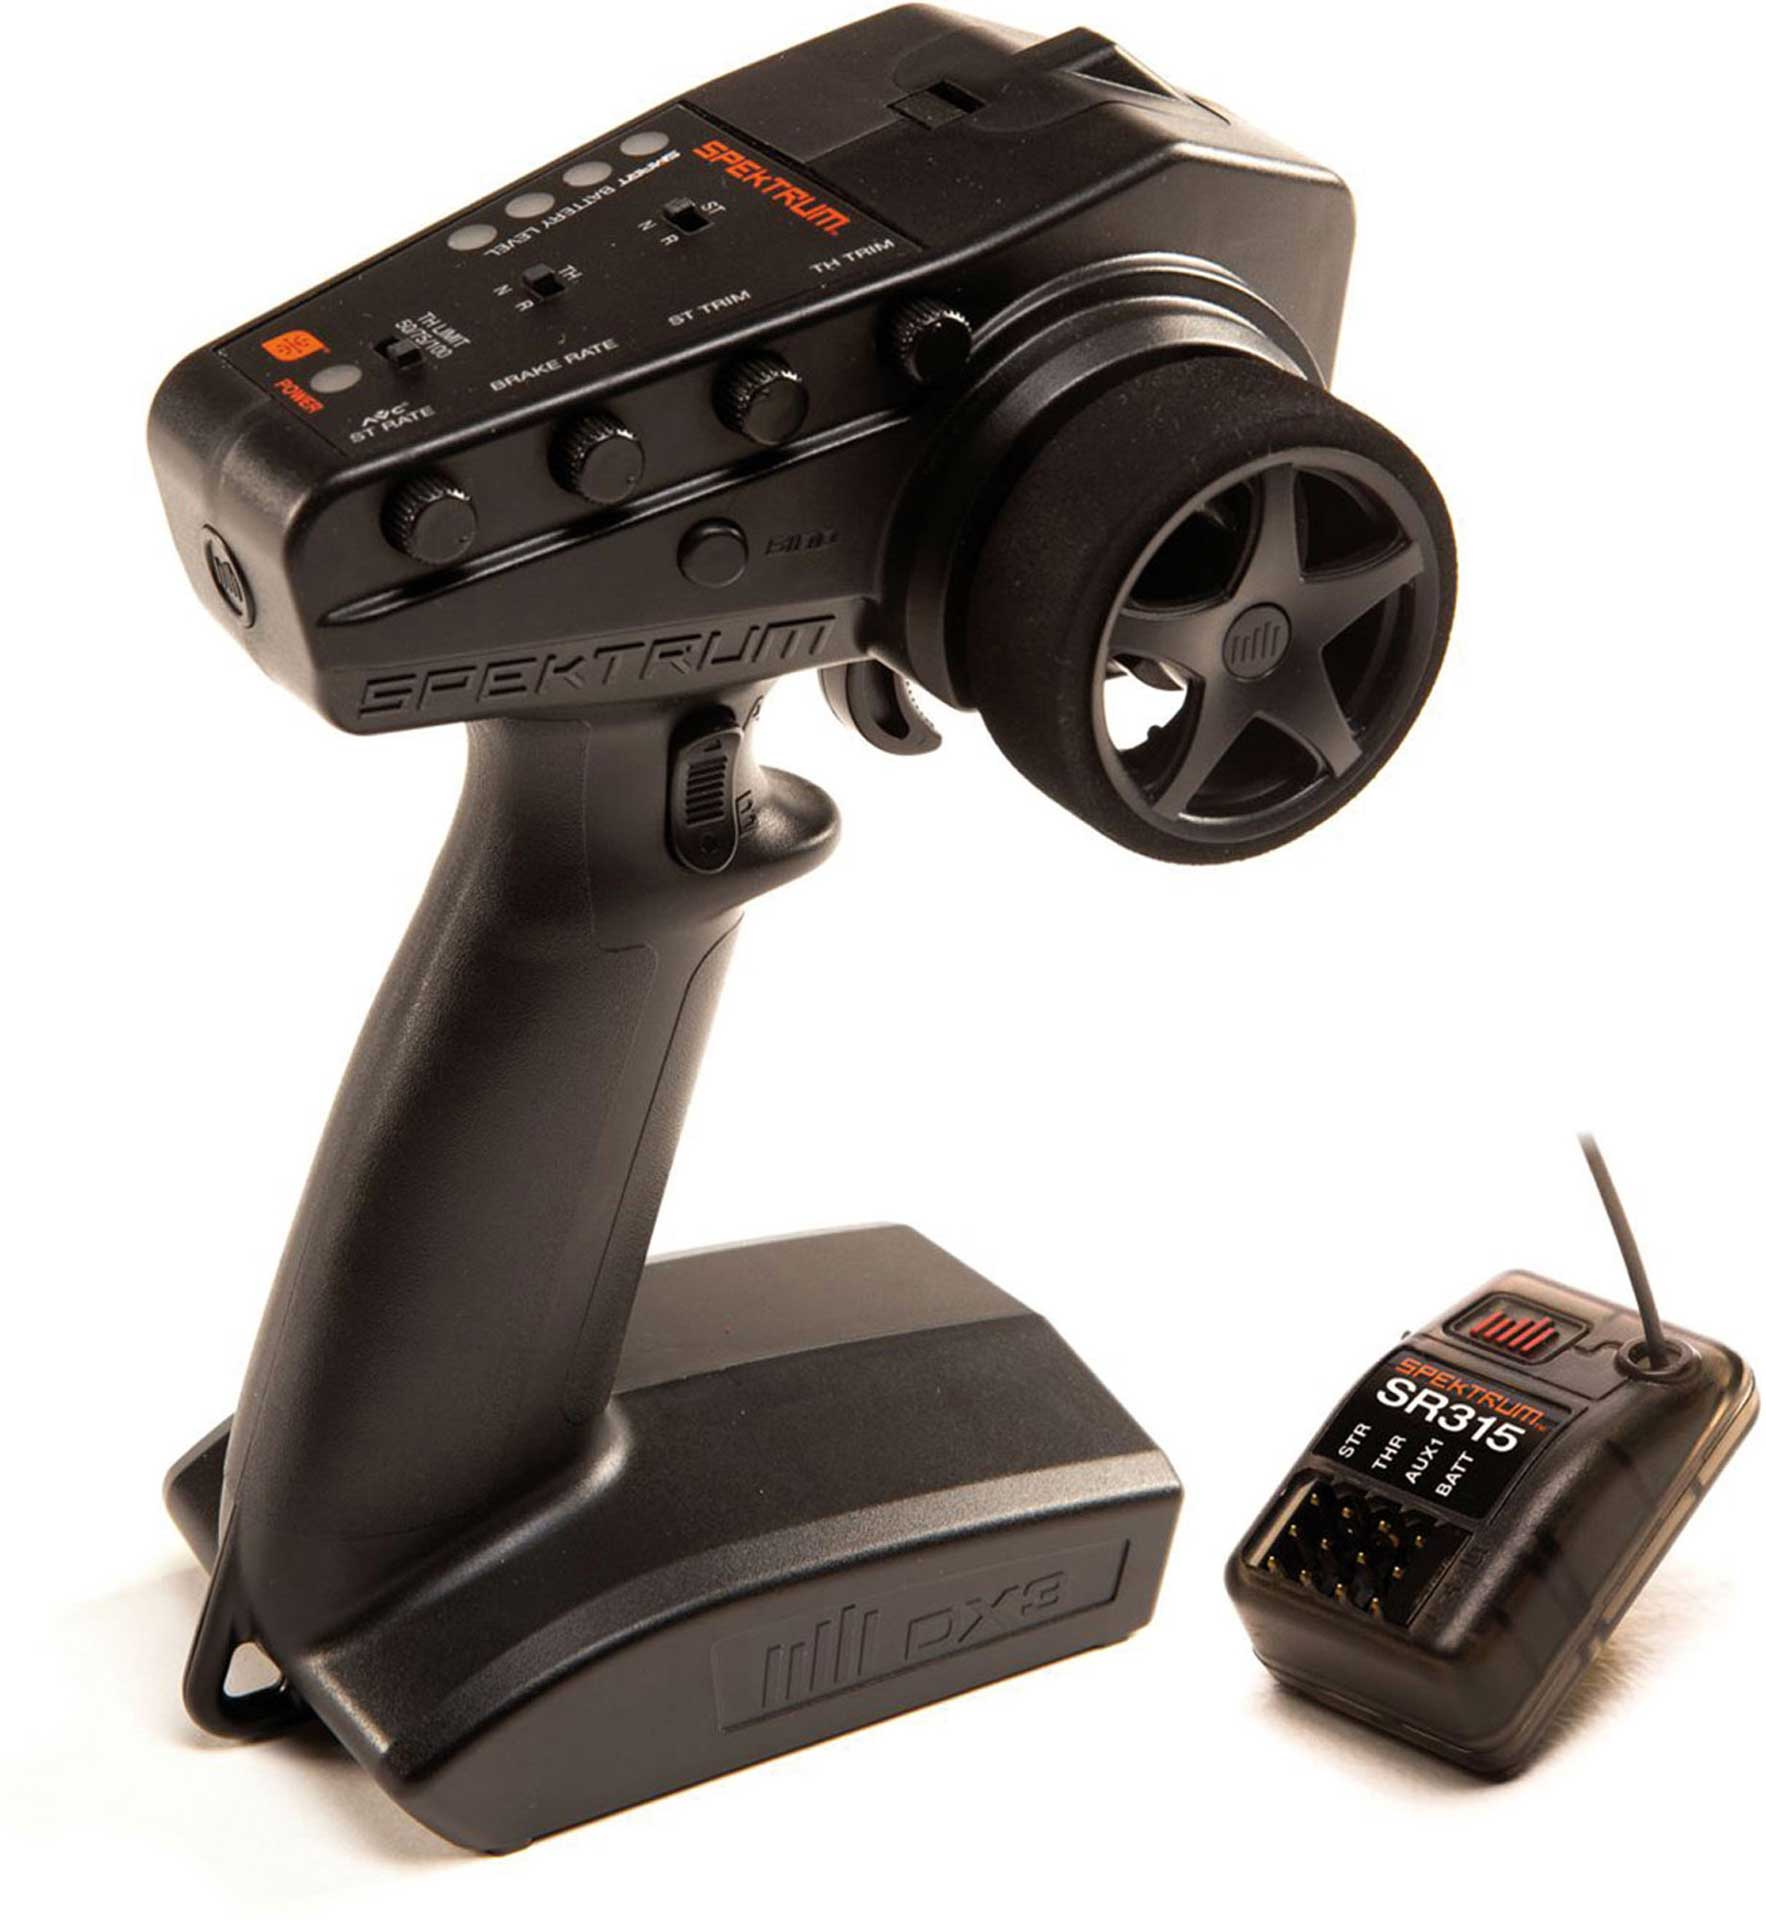 SPEKTRUM DX-3 3-CHANNEL 2.4GHZ REMOTE CONTROL WITH SR315 RECEIVER, GUN TRANSMITTER